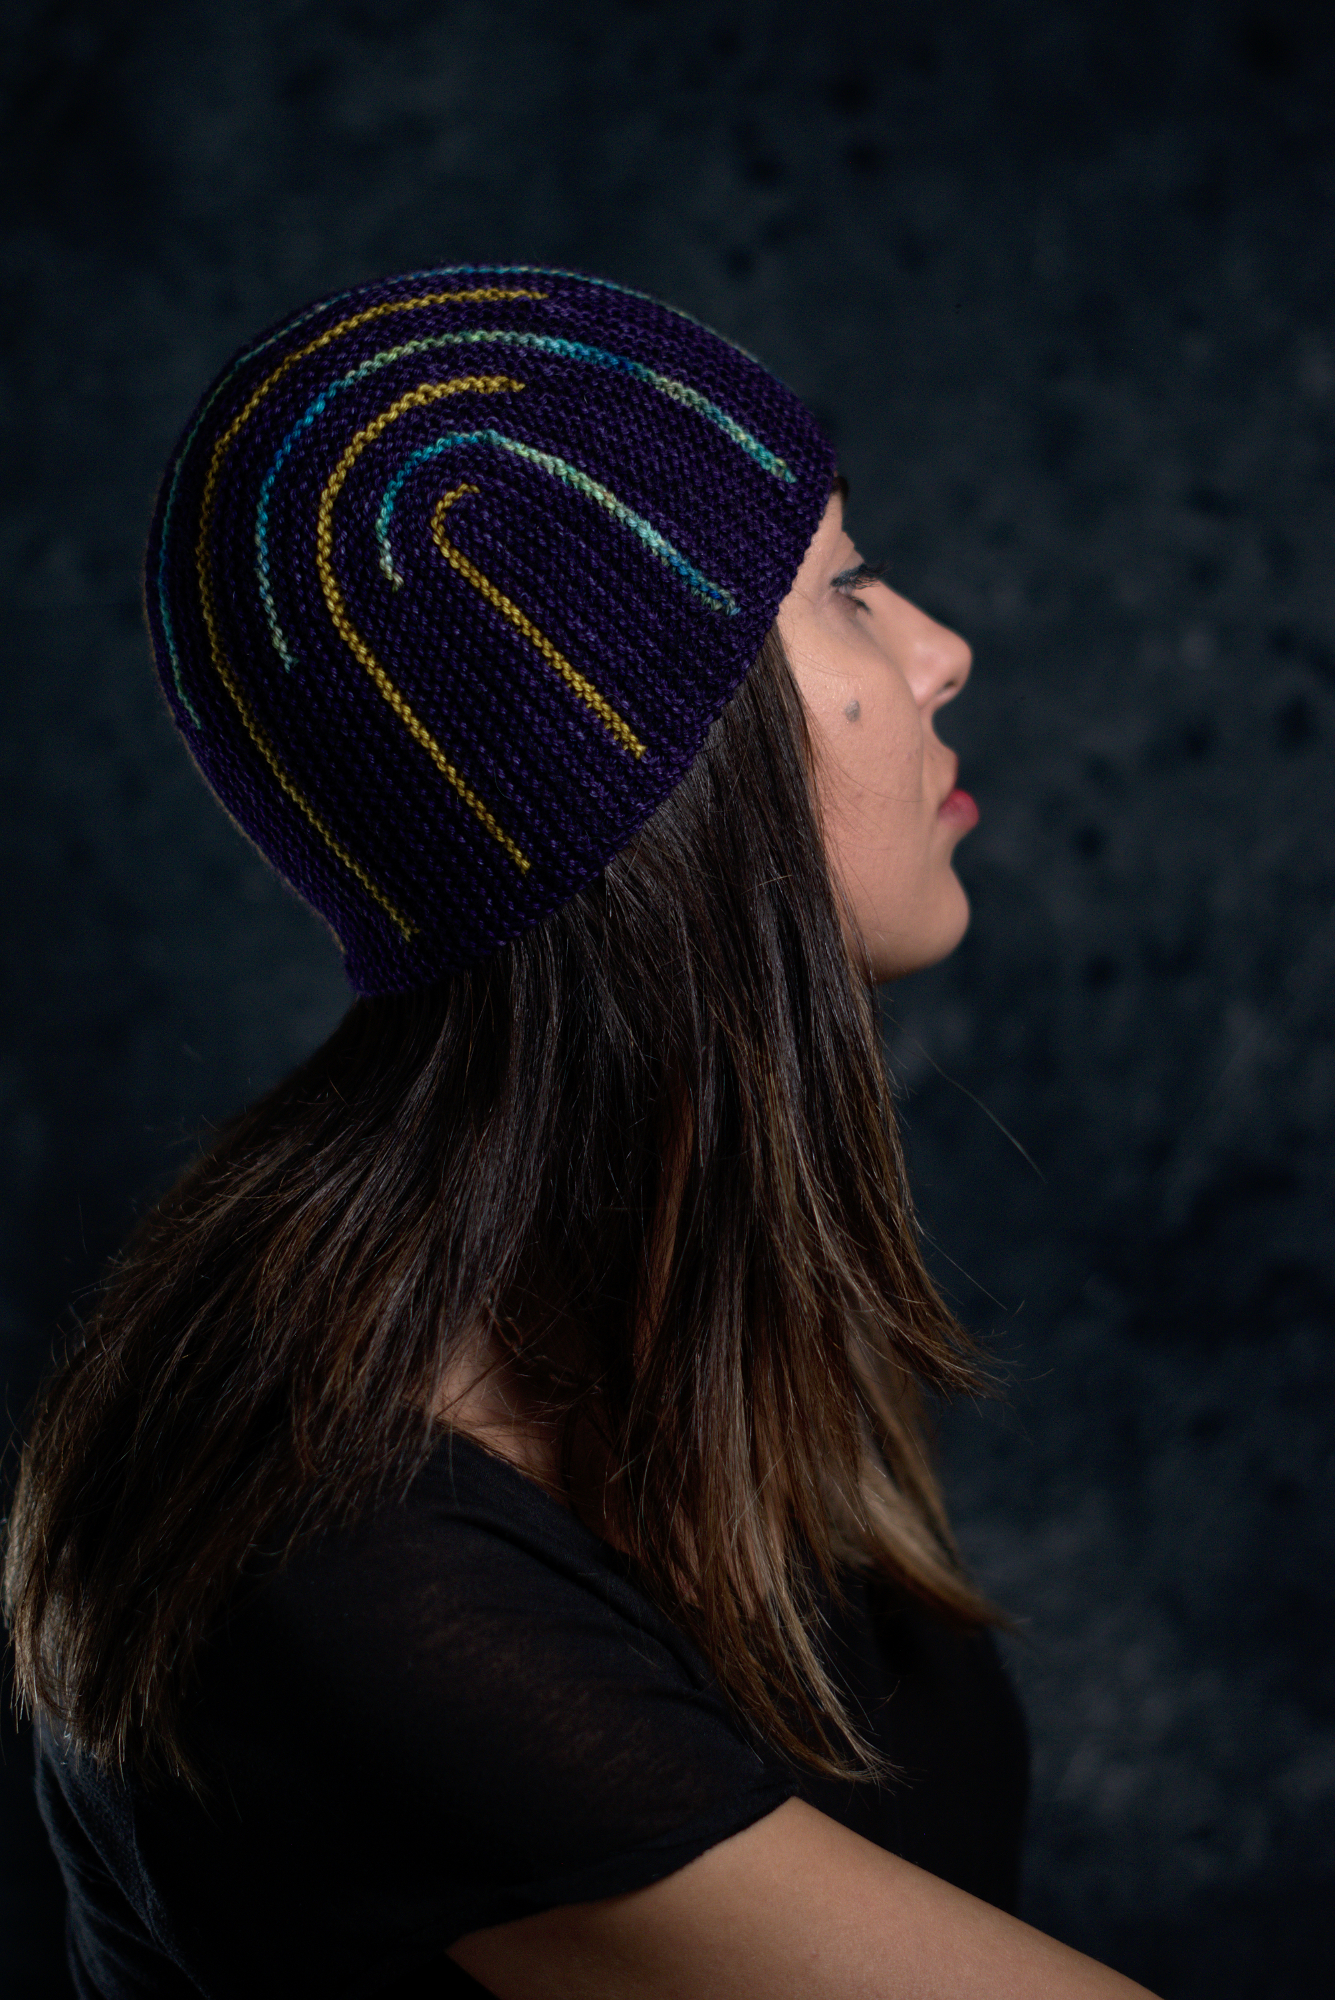 Duality sideways knit short row colourwork hat knitting pattern